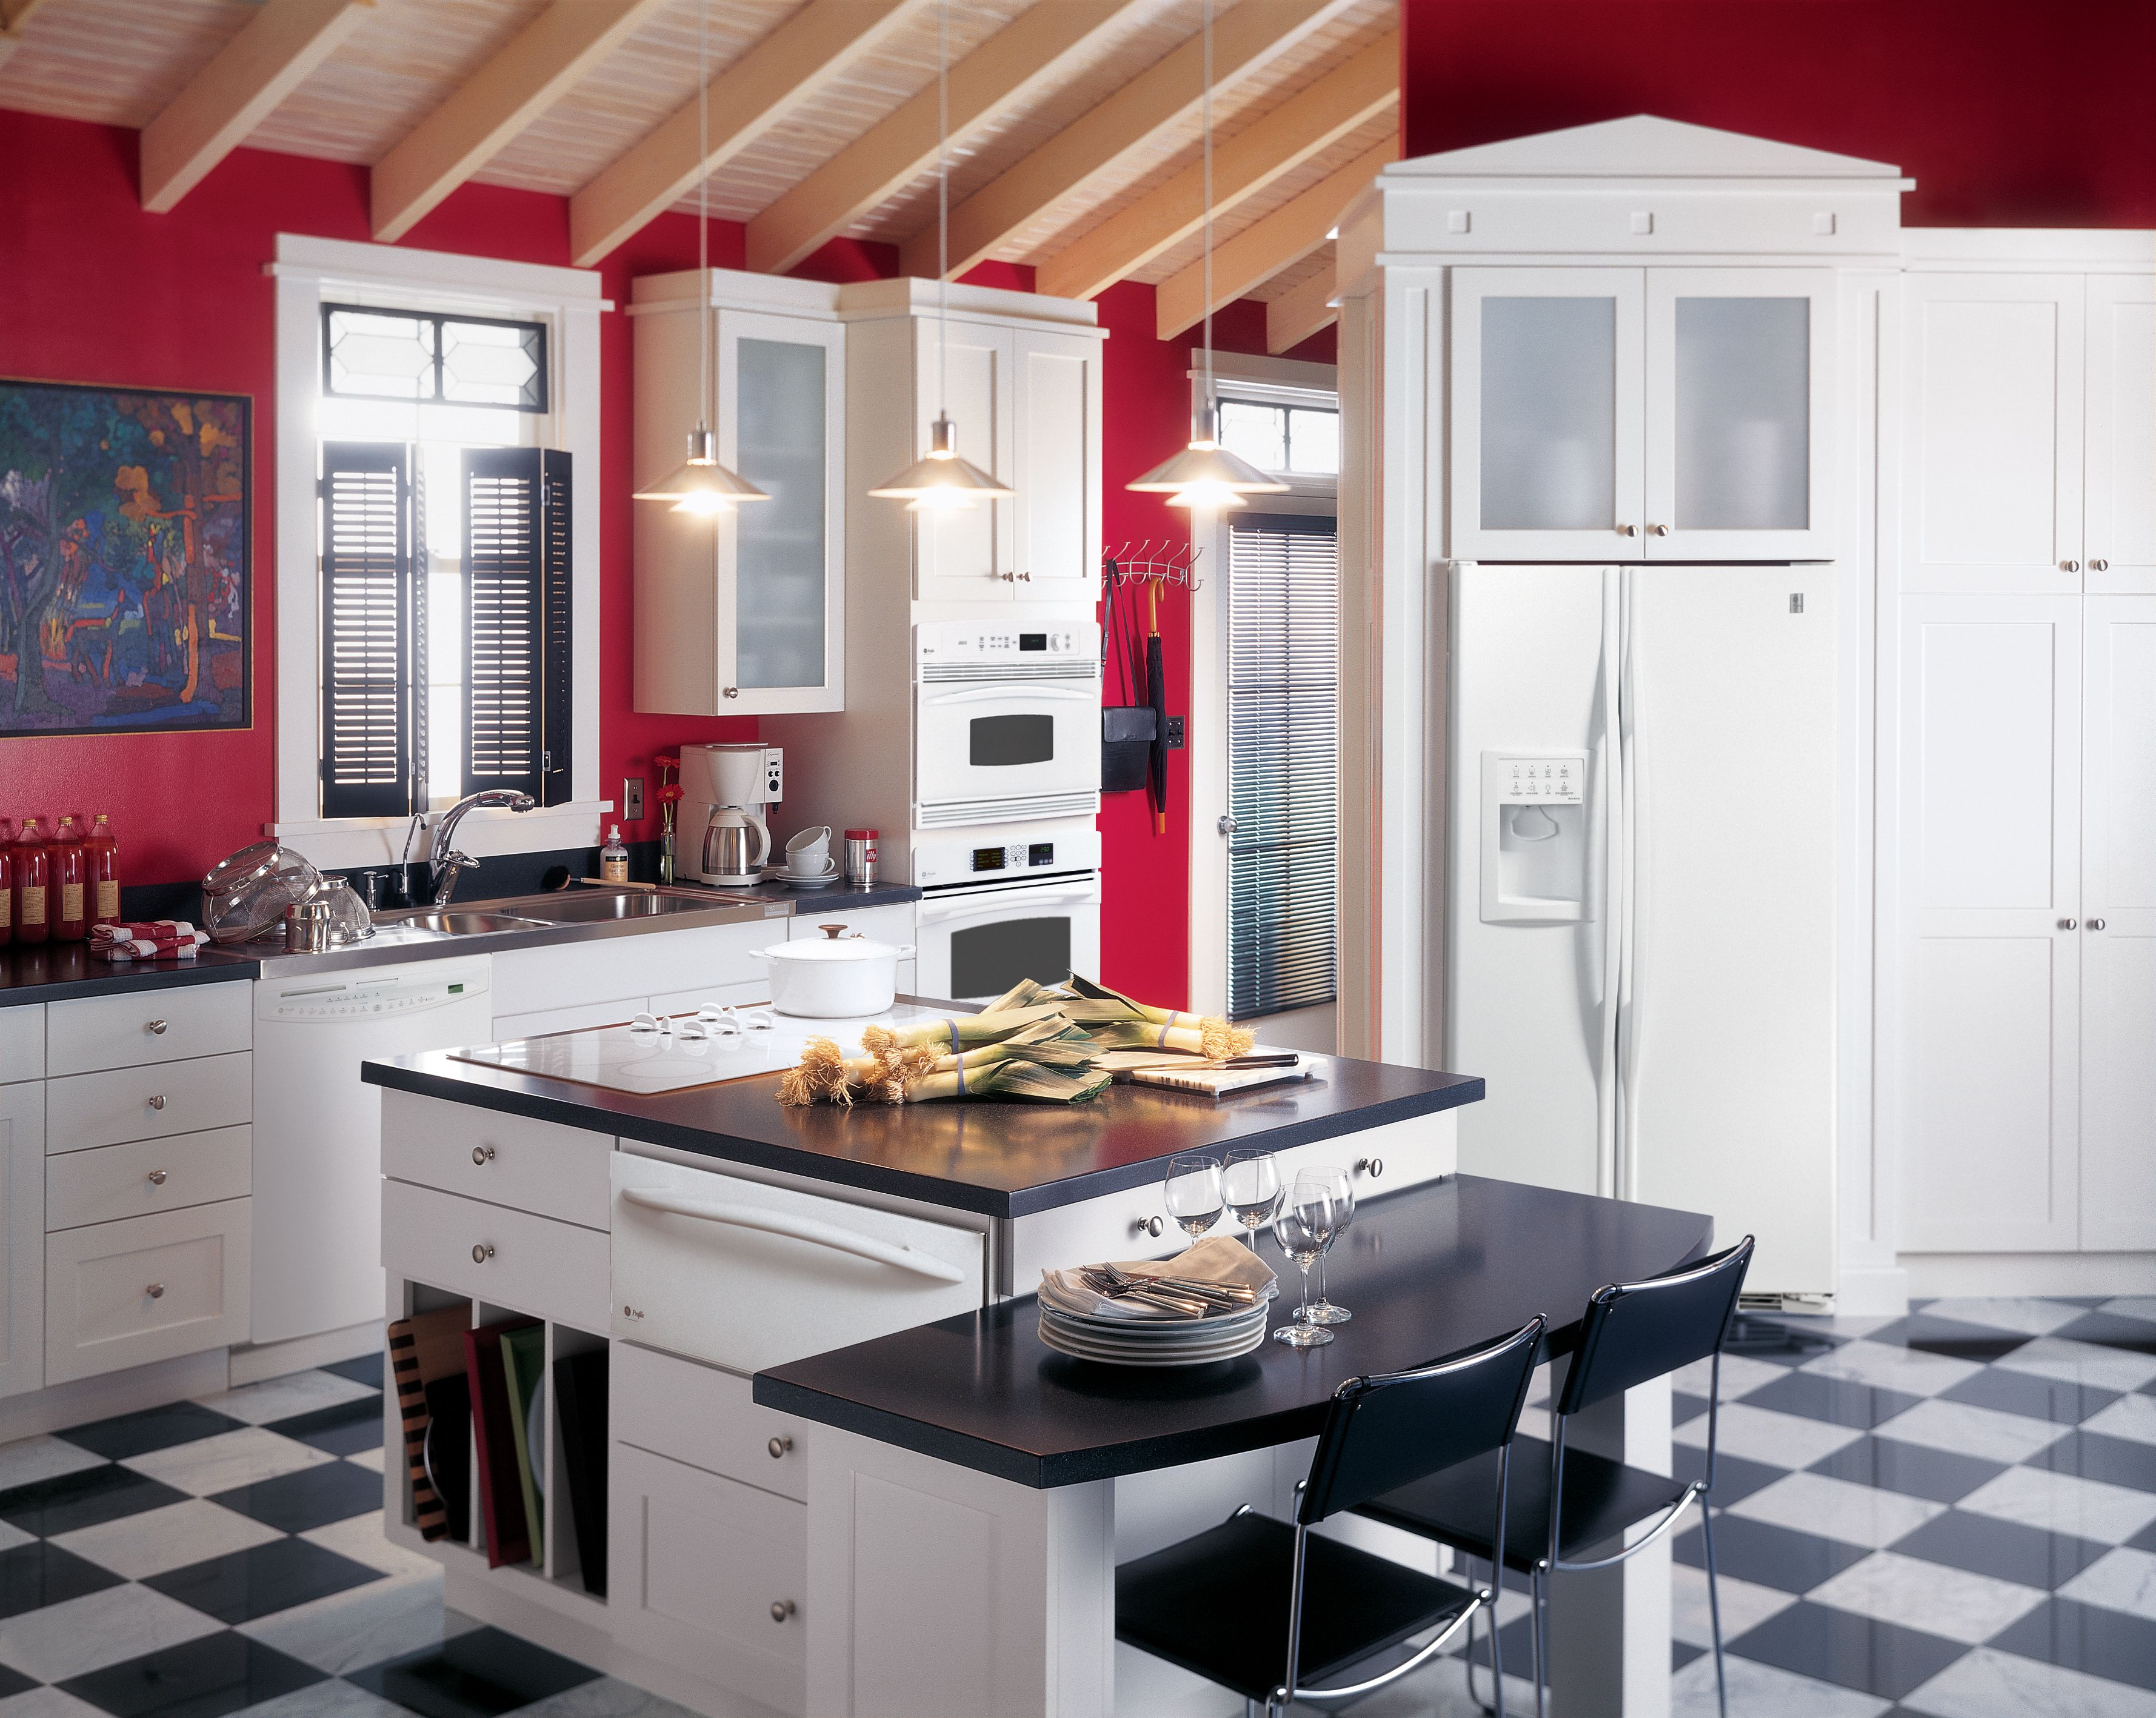 Ge profile kitchen with red walls white cabinets and - Black red and white kitchen designs ...